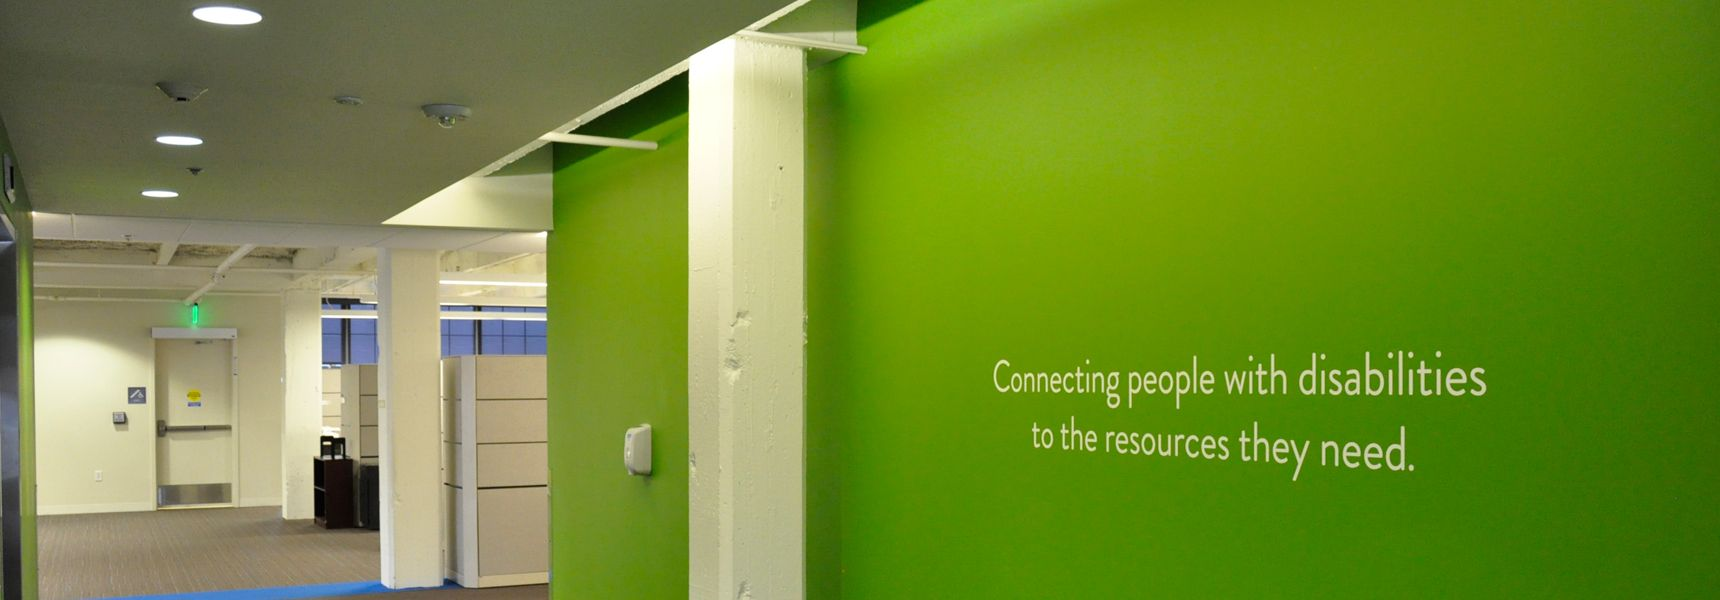 Photo of green interior wall with TWP slogan on it